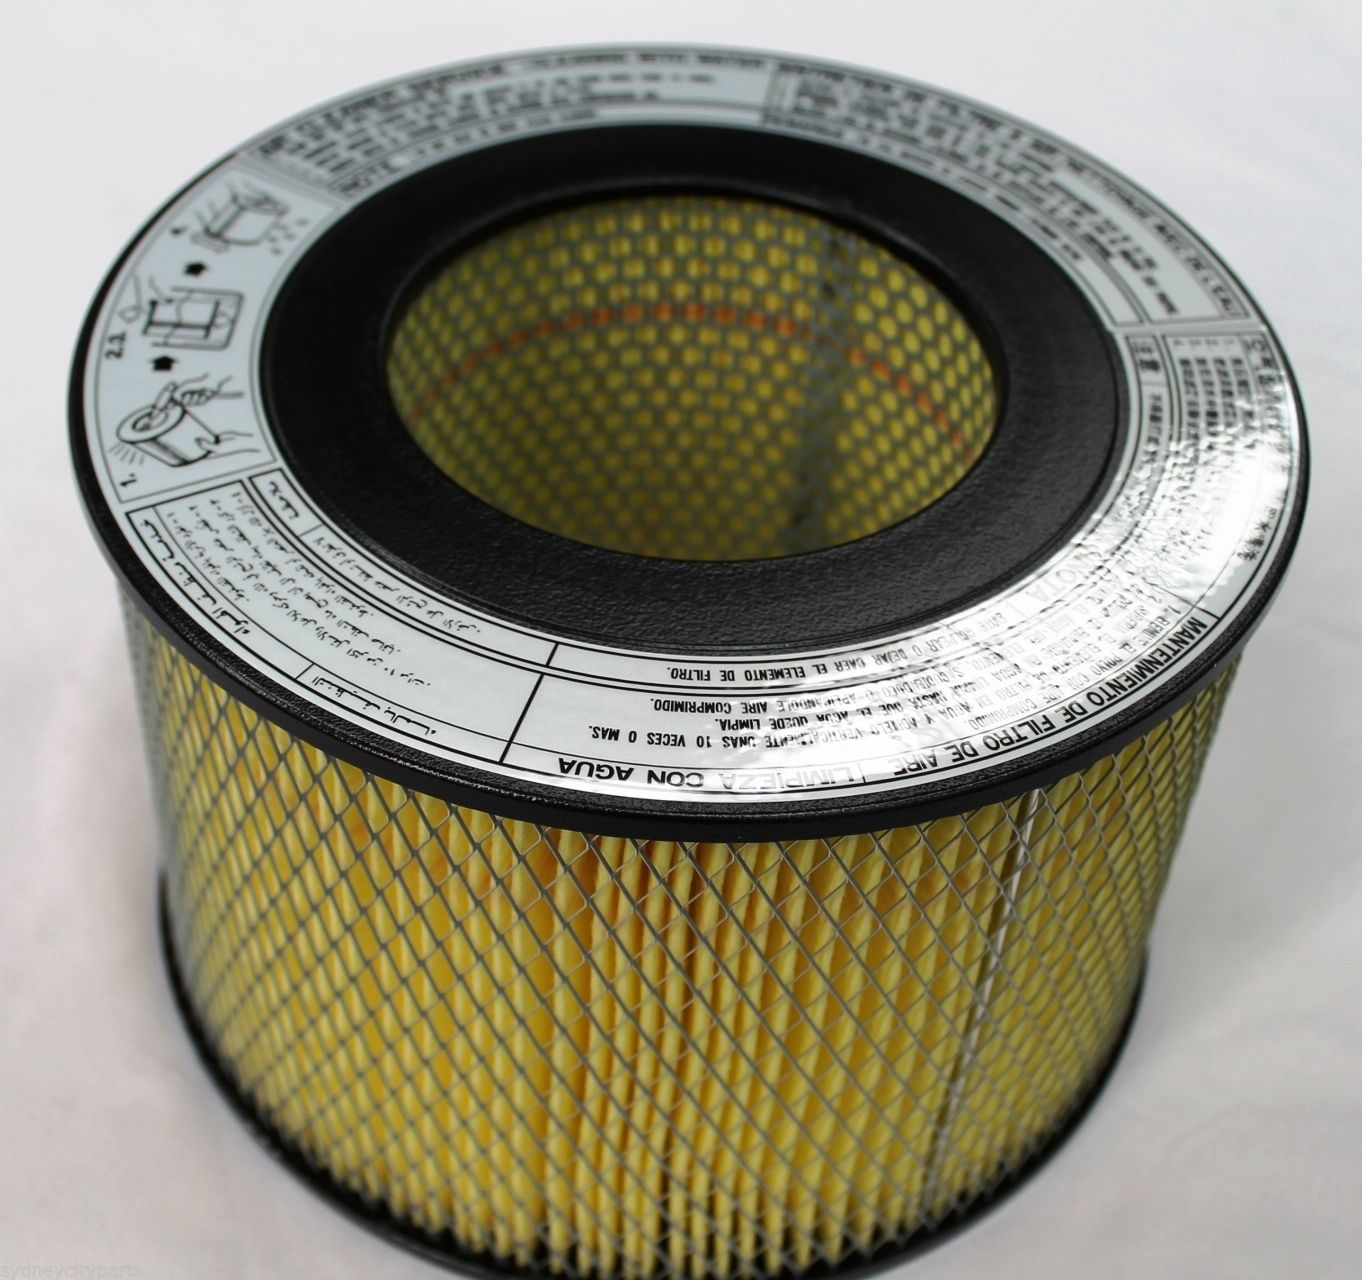 AIR FILTER FOR TOYOTA LANDCRUISER 60 70 80 SERIES 1986-2008 #17801-61030